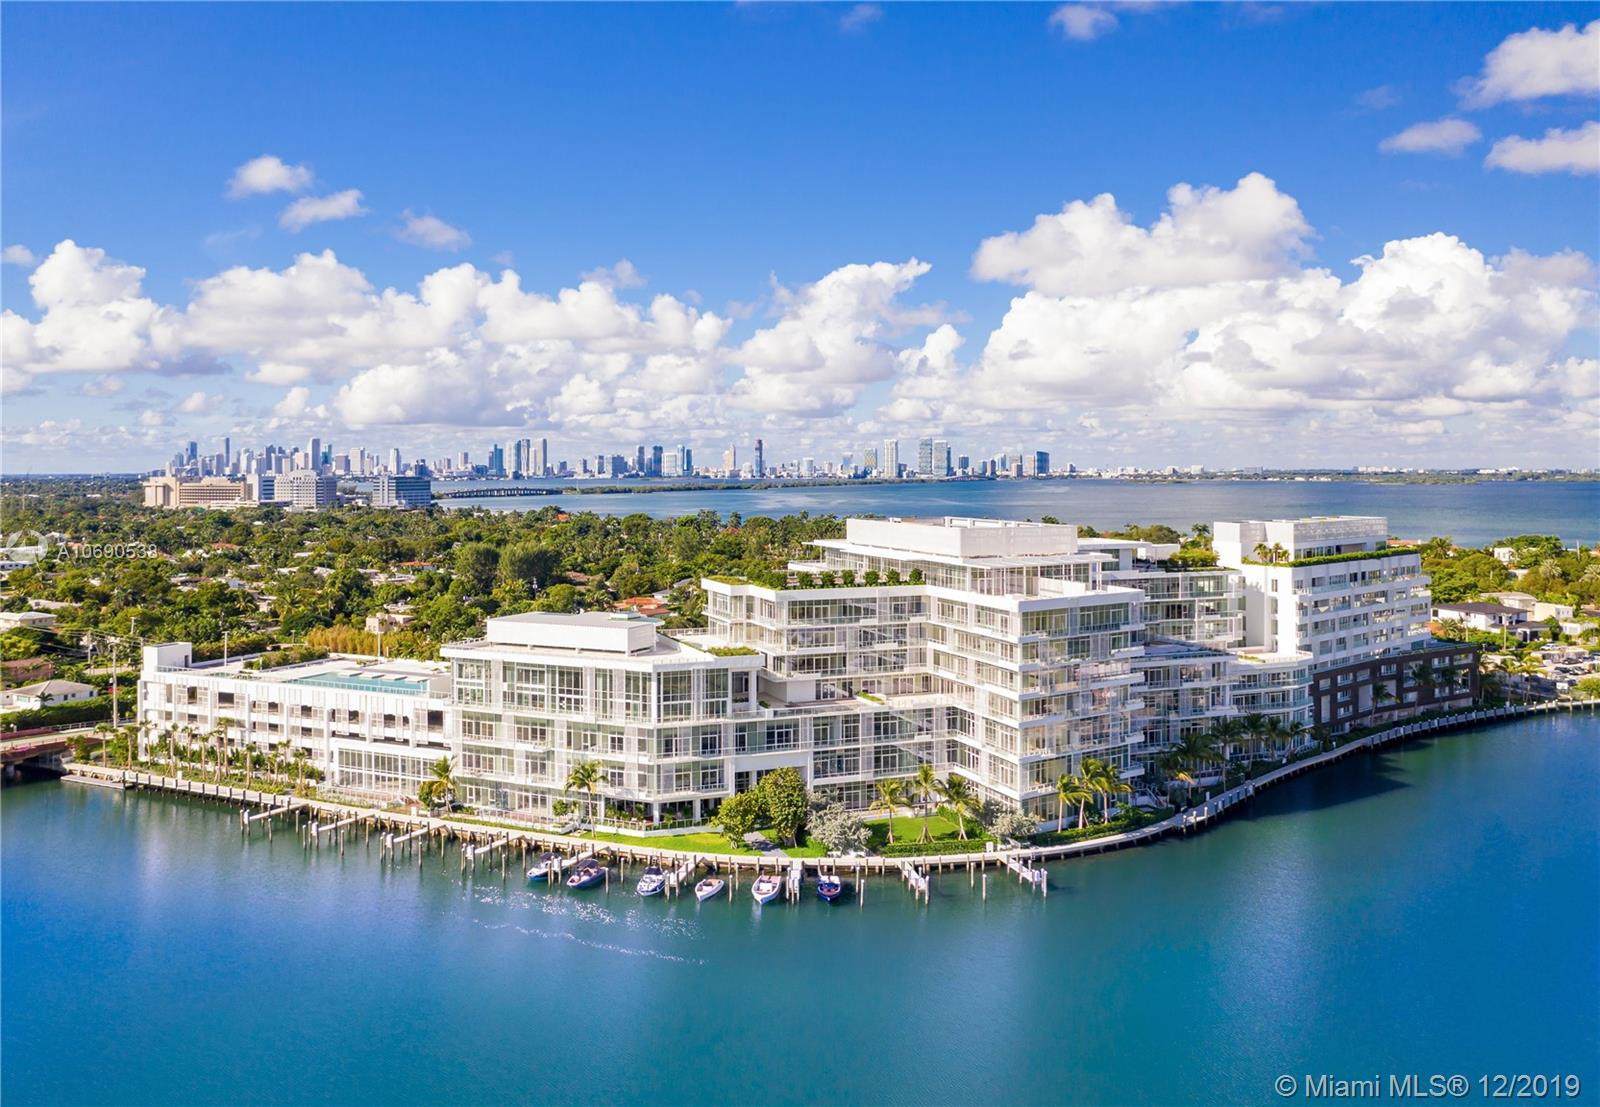 Along the banks of a private ocean inlet, The Ritz-Carlton Residences, Miami Beach is the first full-scale residential project designed by Master Italian Architect Piero Lissoni. Comprised of only 111 residences, this one-of-a-kind corner residence features four large bedroom suites with bathrooms and large closets, a powder room for guests, private elevator, and an oversized terrace with plunge pool, outdoor summer kitchen and unobstructed views of Miami Beach, Biscayne Bay, and Downtown Miami. Move-in this year and feel like you're living in a single-family home with access to five-star amenities and services managed by the world's leading hospitality brand, The Ritz-Carlton.